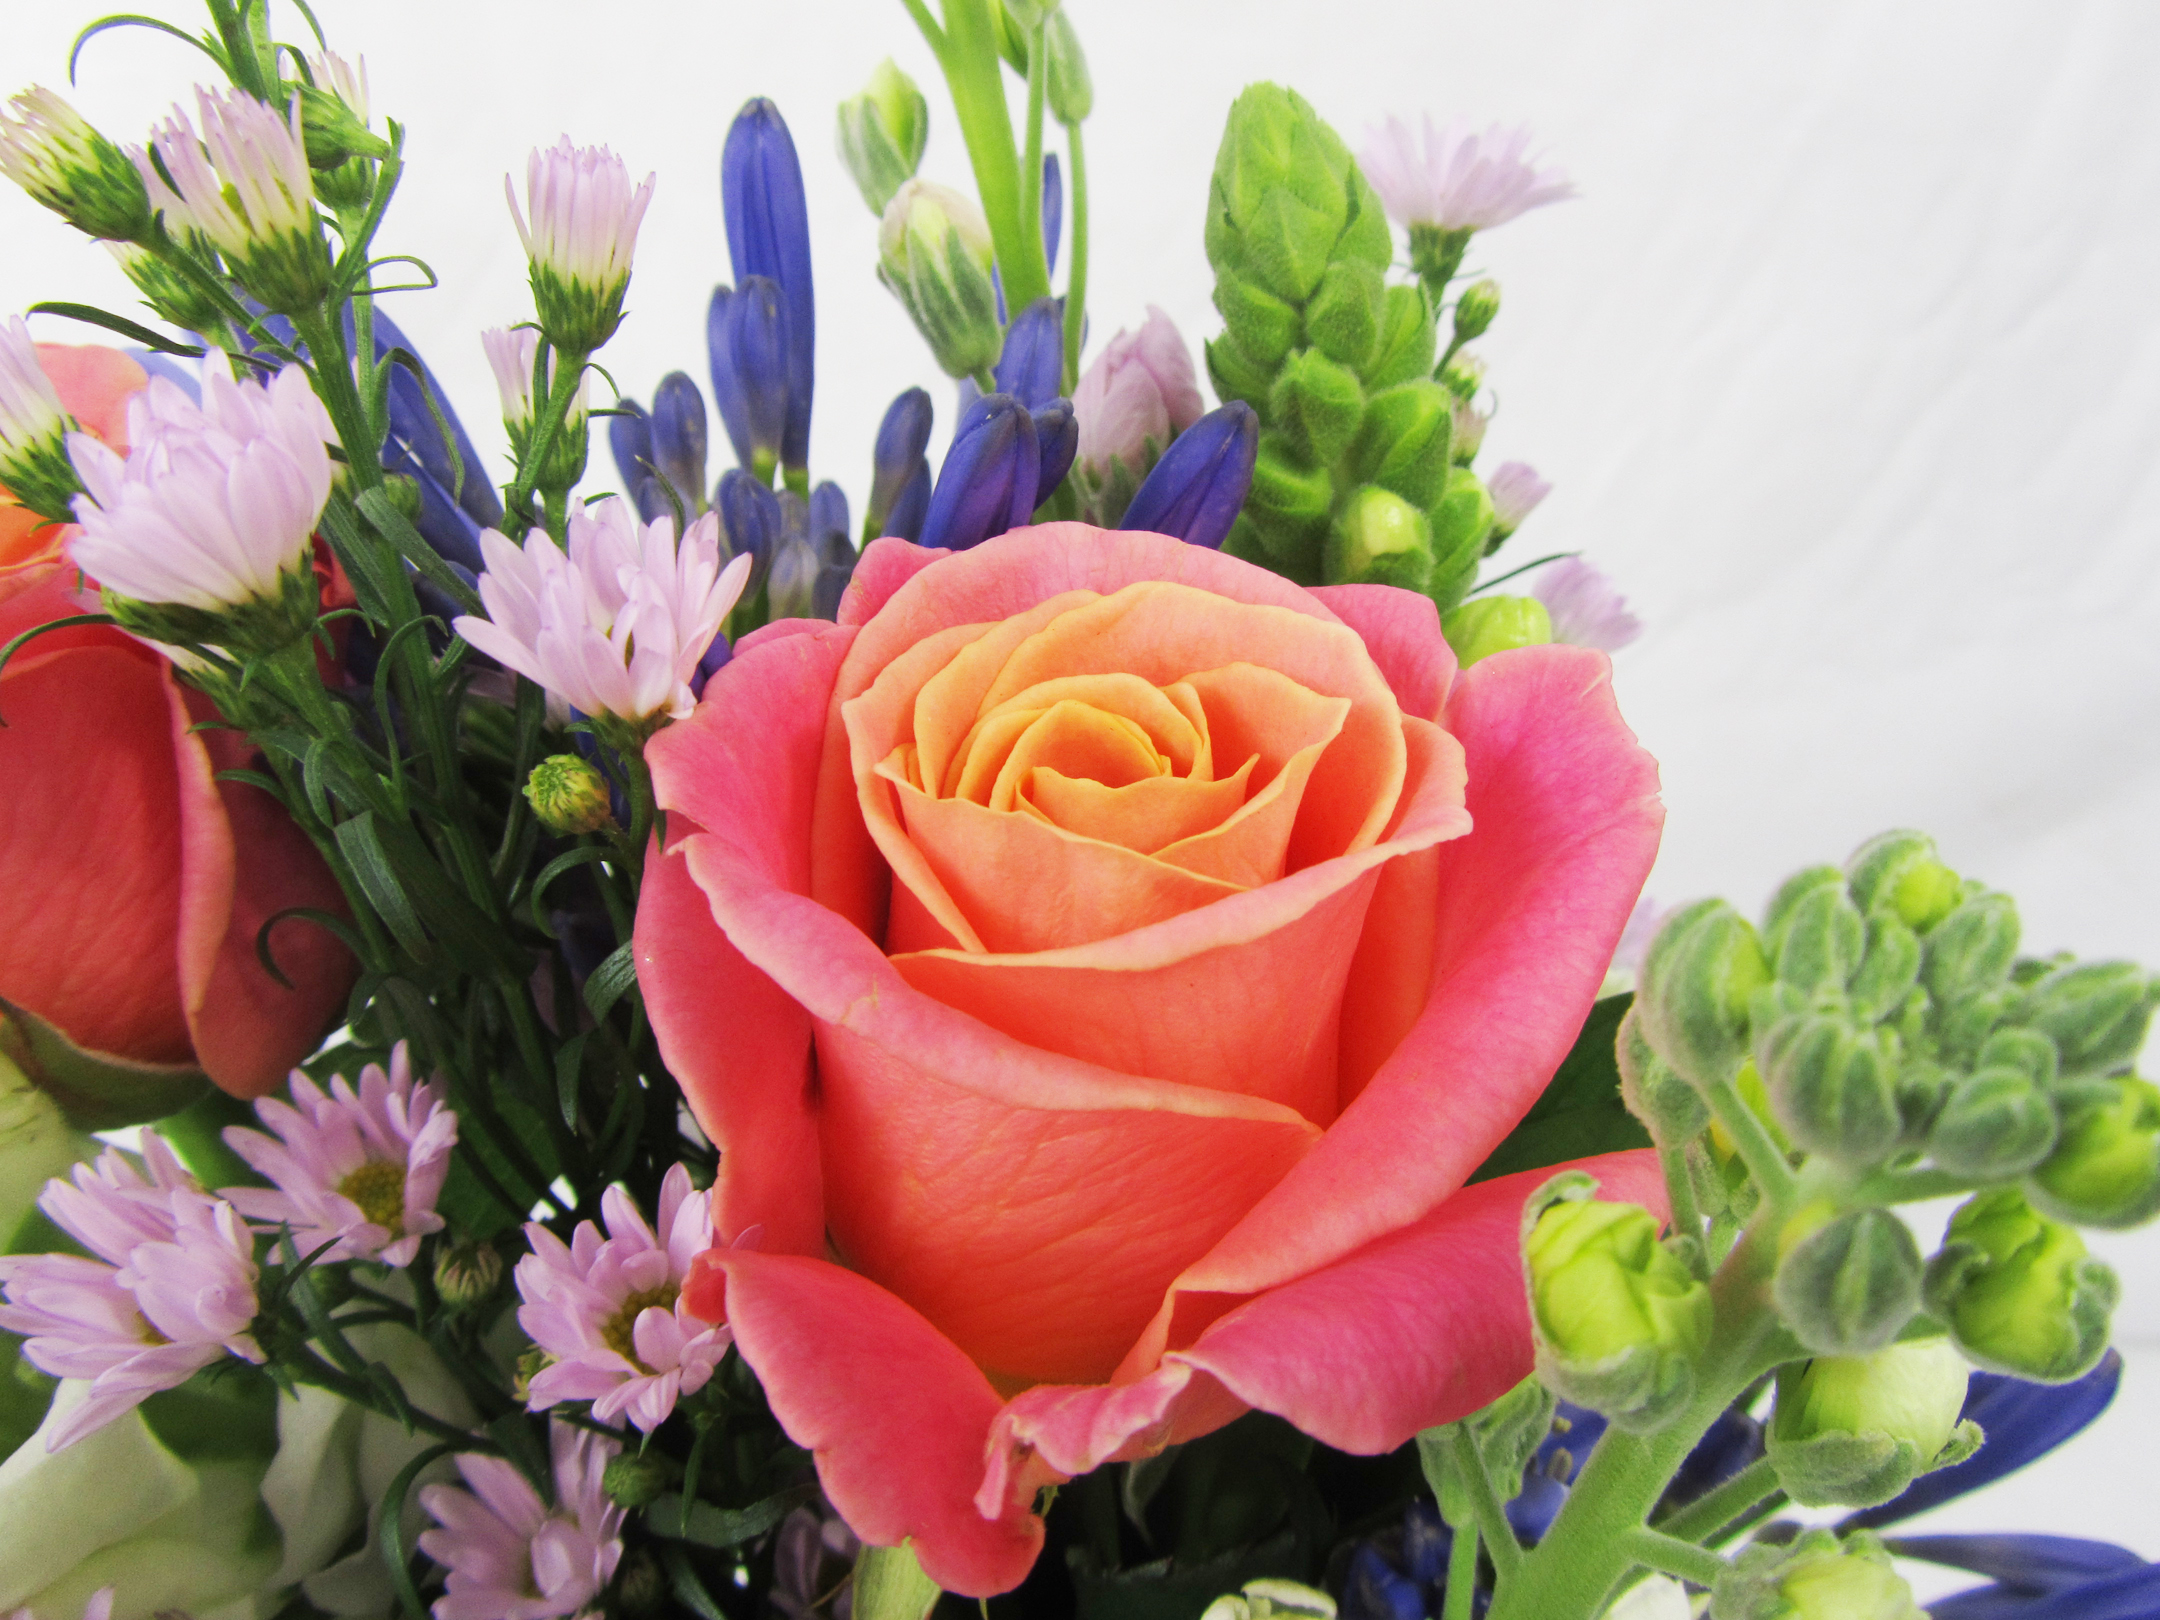 Send an international flower delivery for Mother's Day